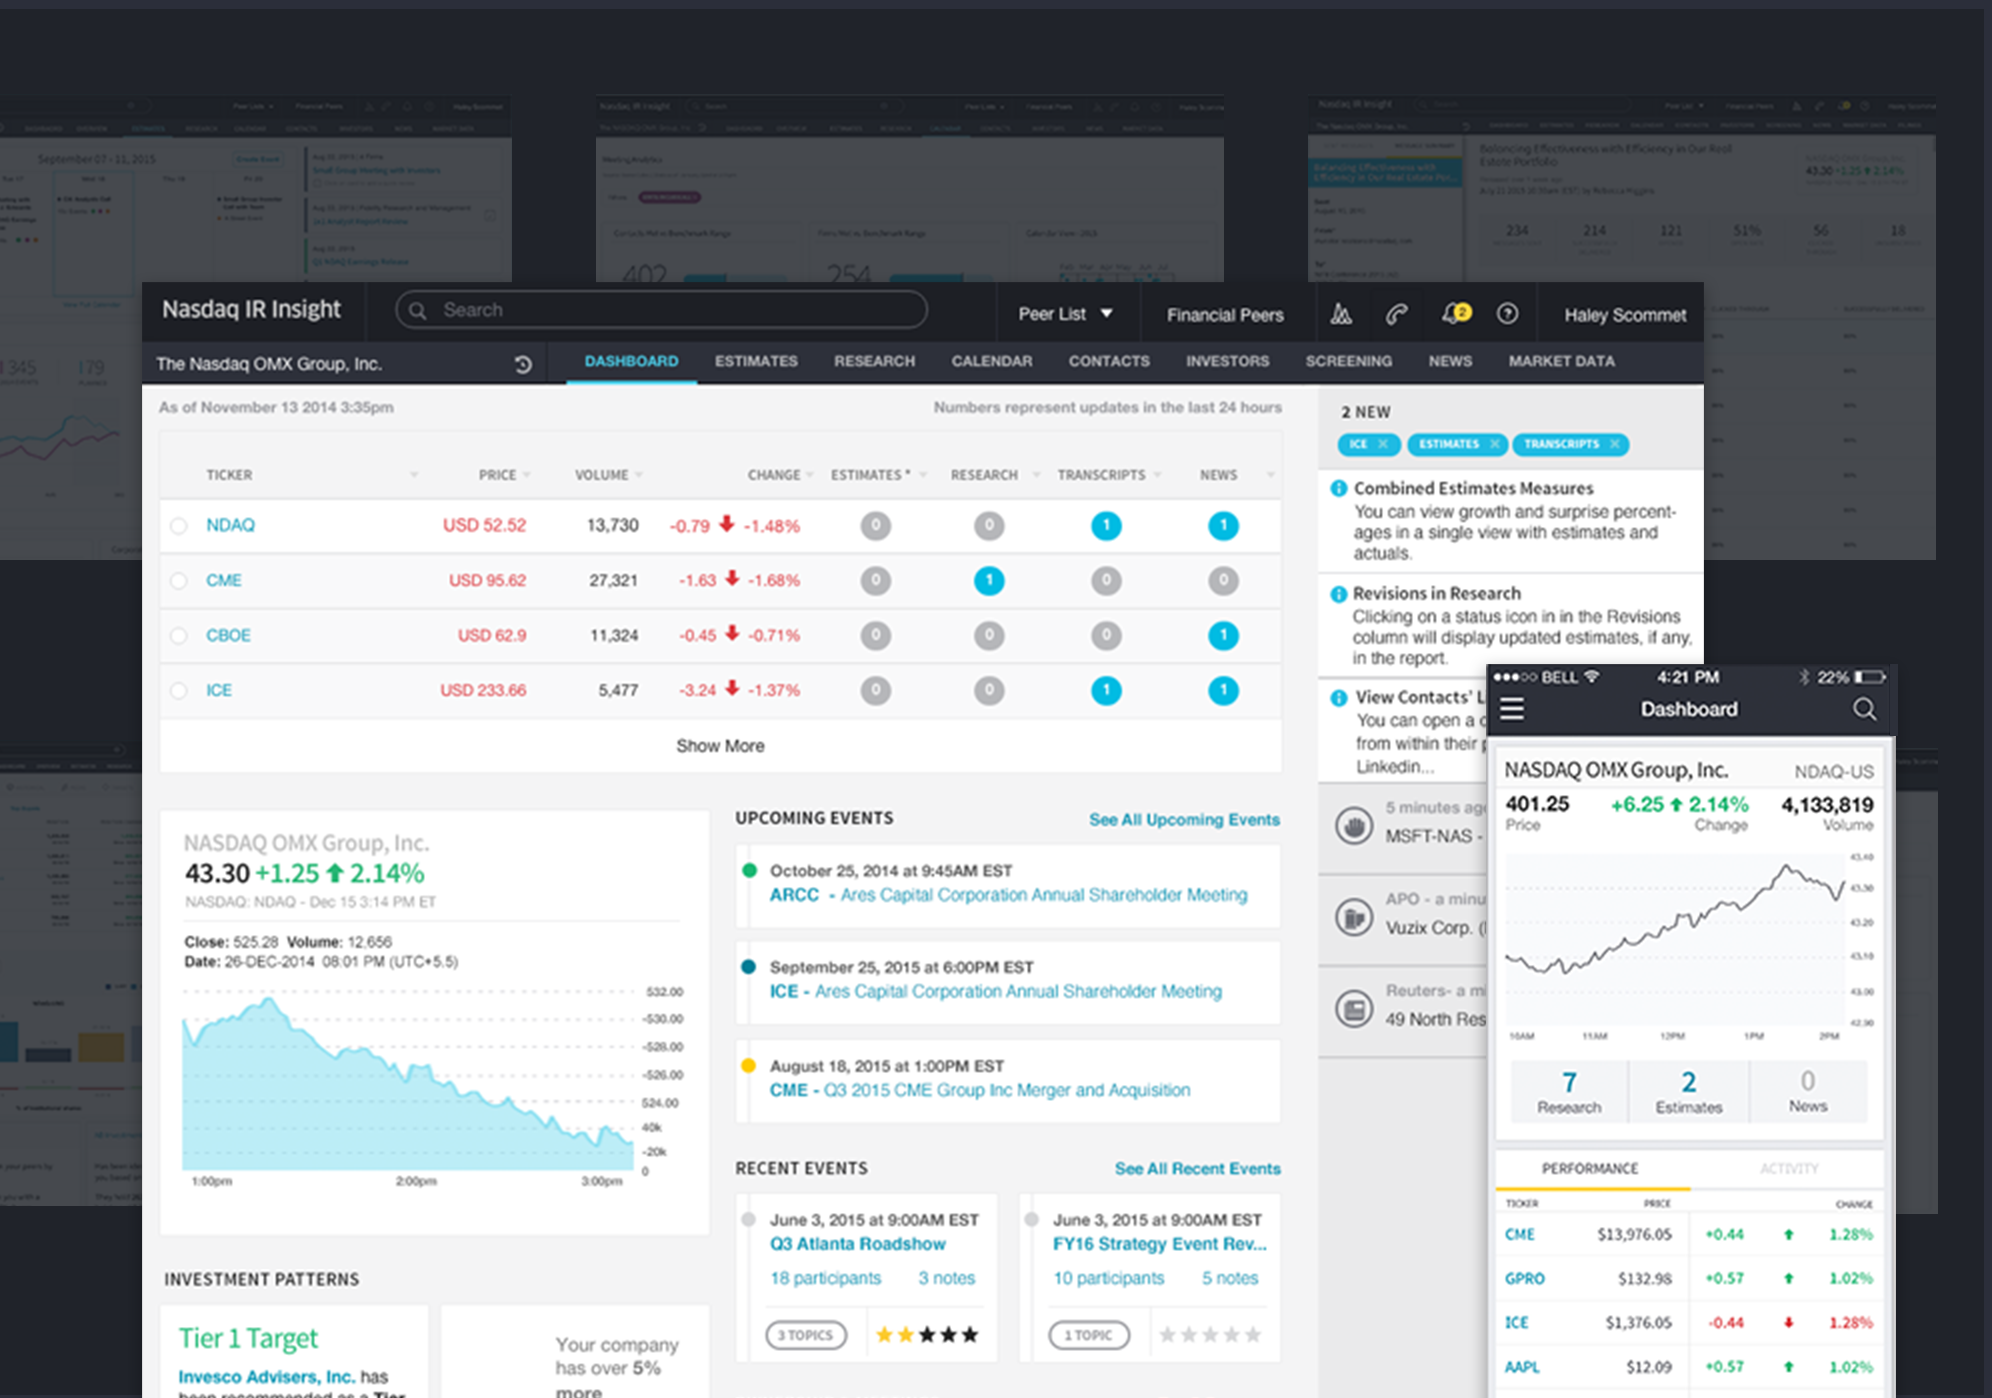 IR Insight - Full redesigning of Nasdaq's Investor Relations Platform from the ground up. Two year project that revolutionized the way Nasdaq built and designed enterprise software.Role: Creative DirectionView Project